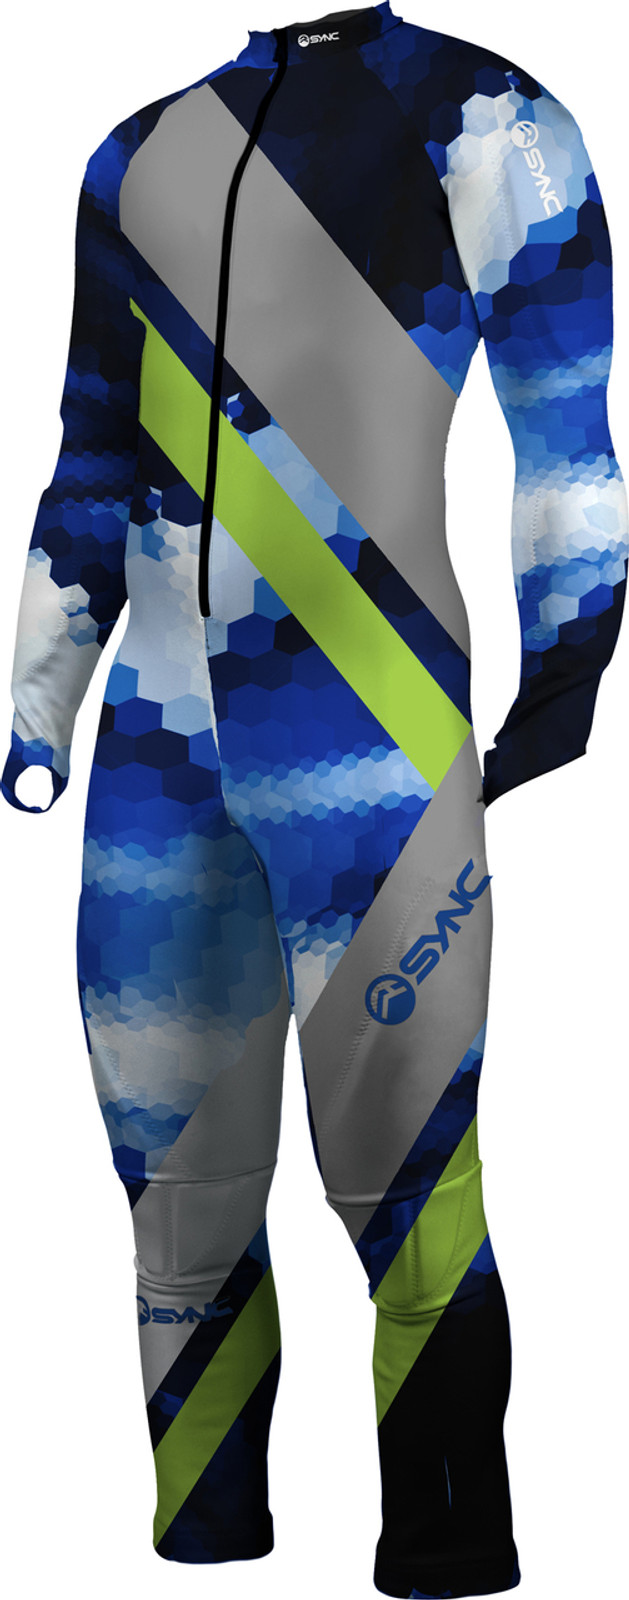 Sync Voodoo GS Race Suit